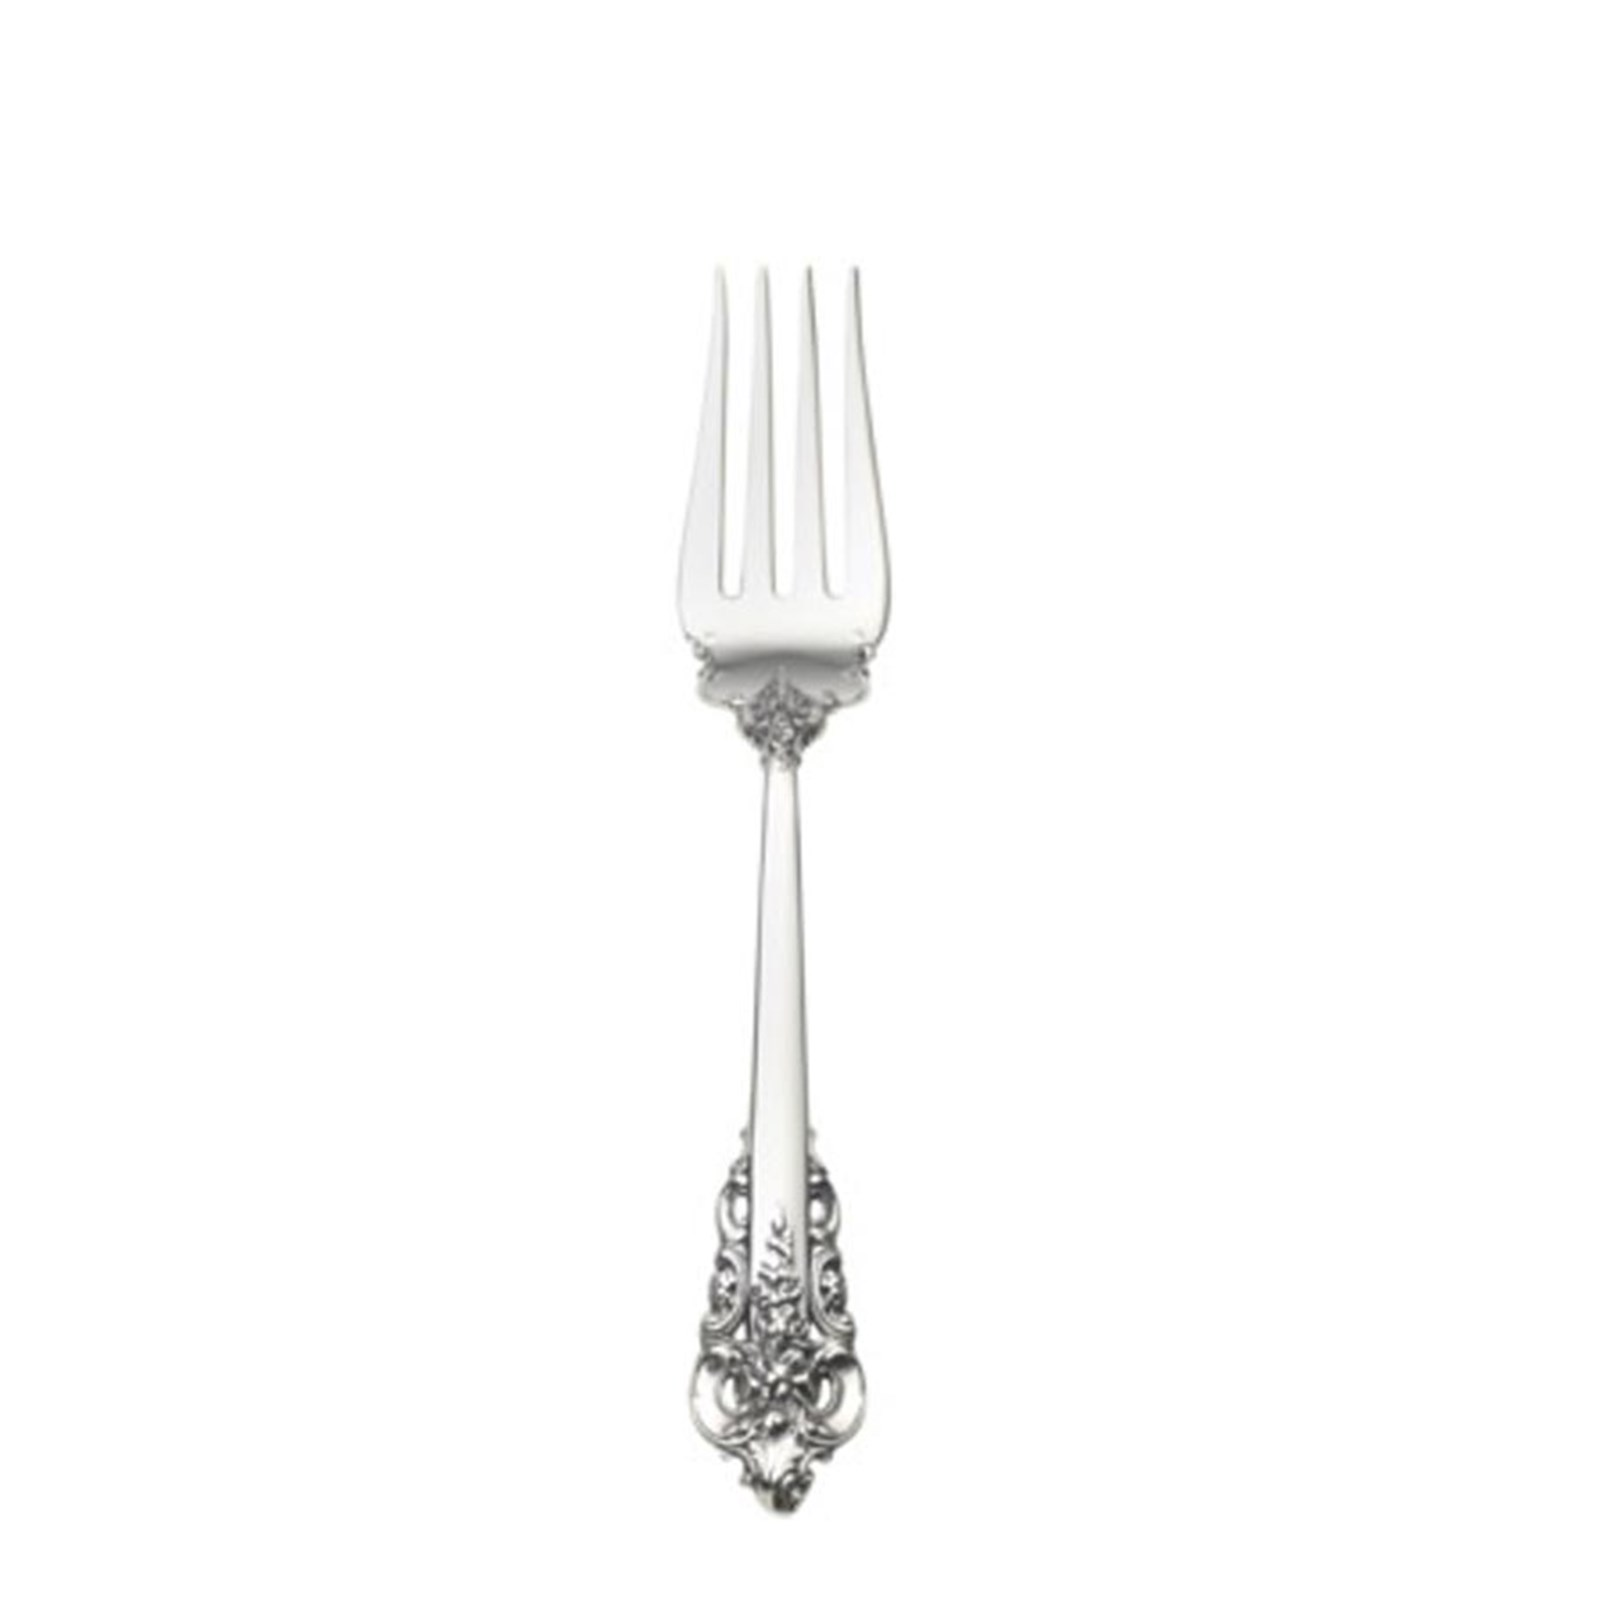 Grande Baroque Cocktail Fork Wallace Sterling Silver 1941